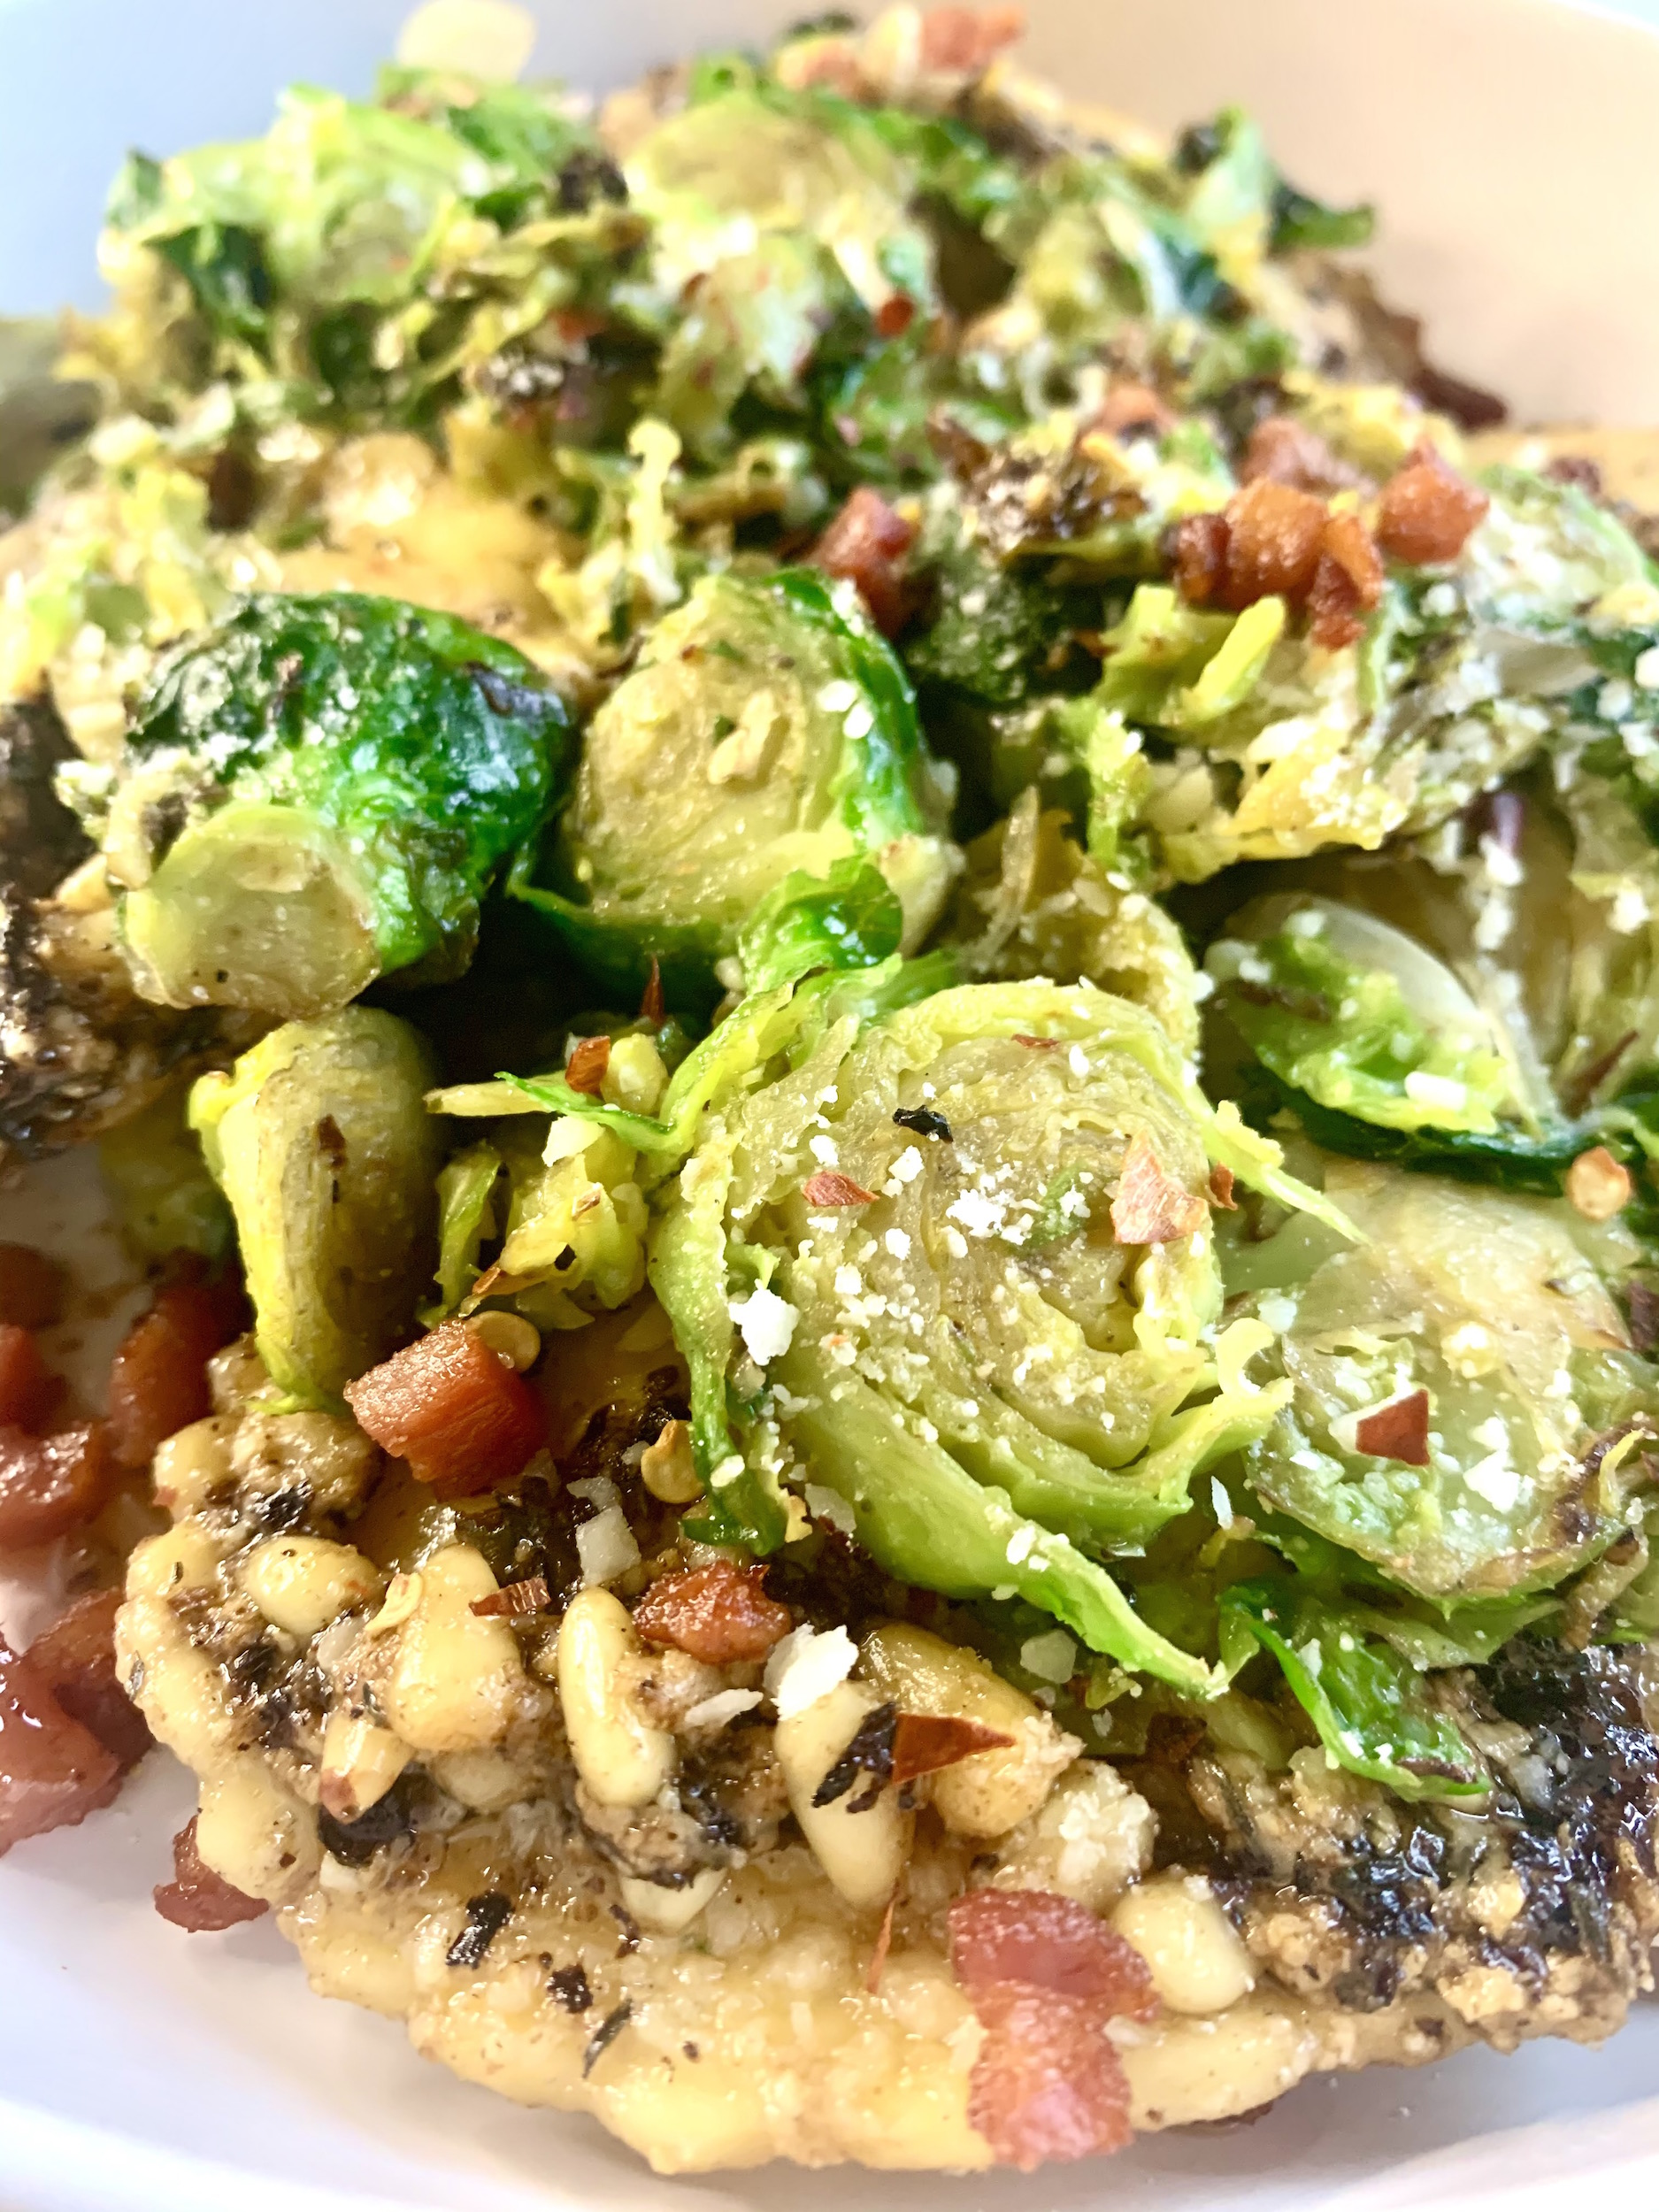 Close up of cheese ravioli topped with shredded brussels sprouts and crispy pancetta.